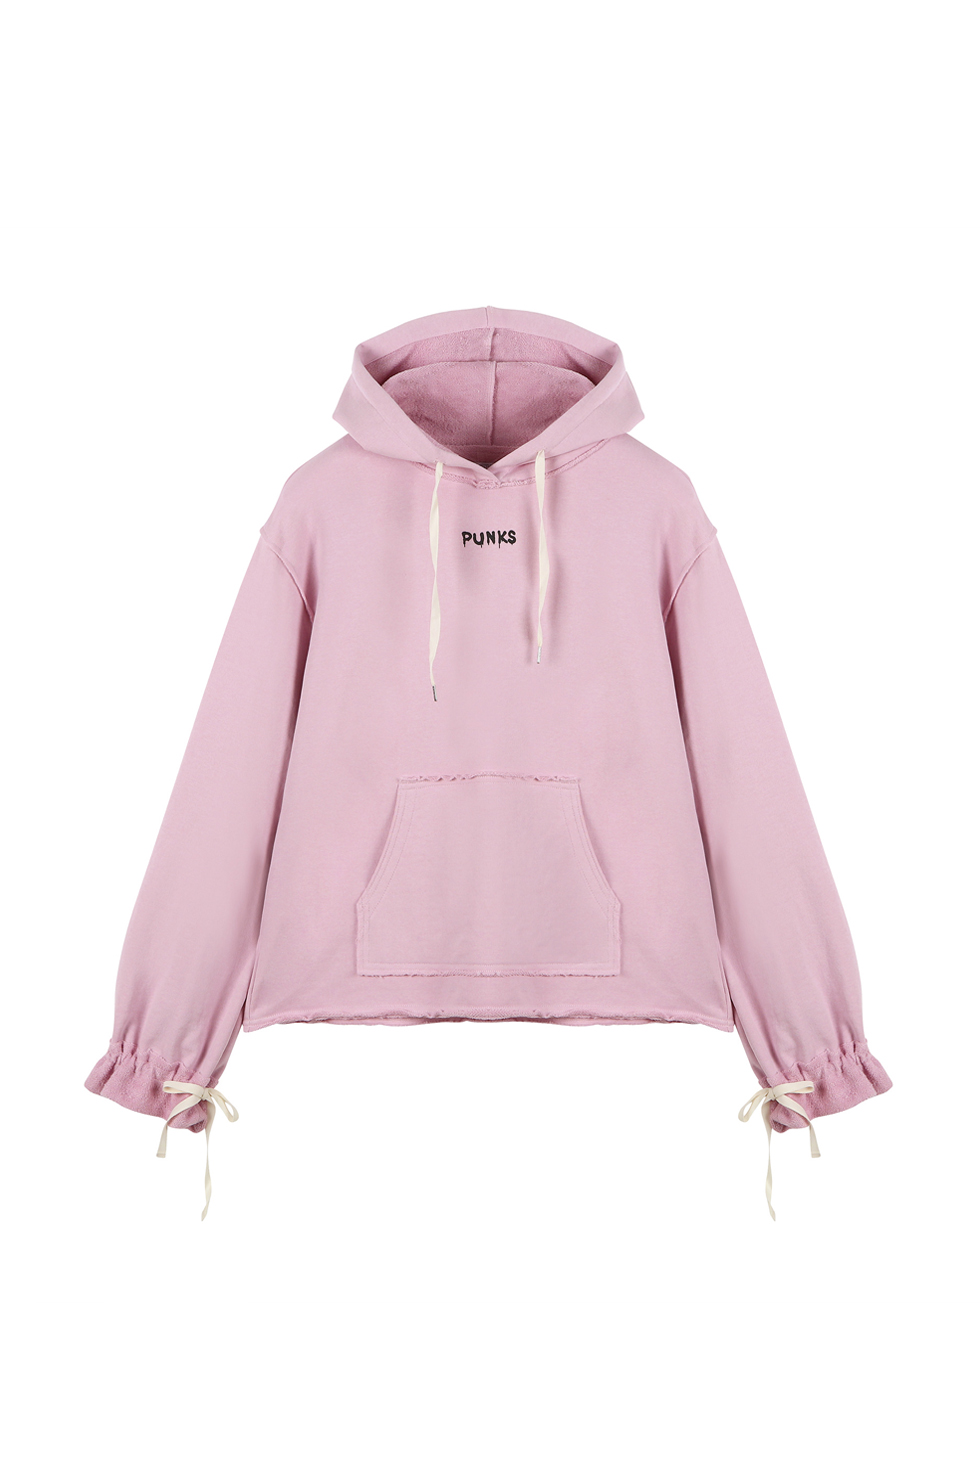 """PUNK"" JERSEY PULLOVER - PINK"